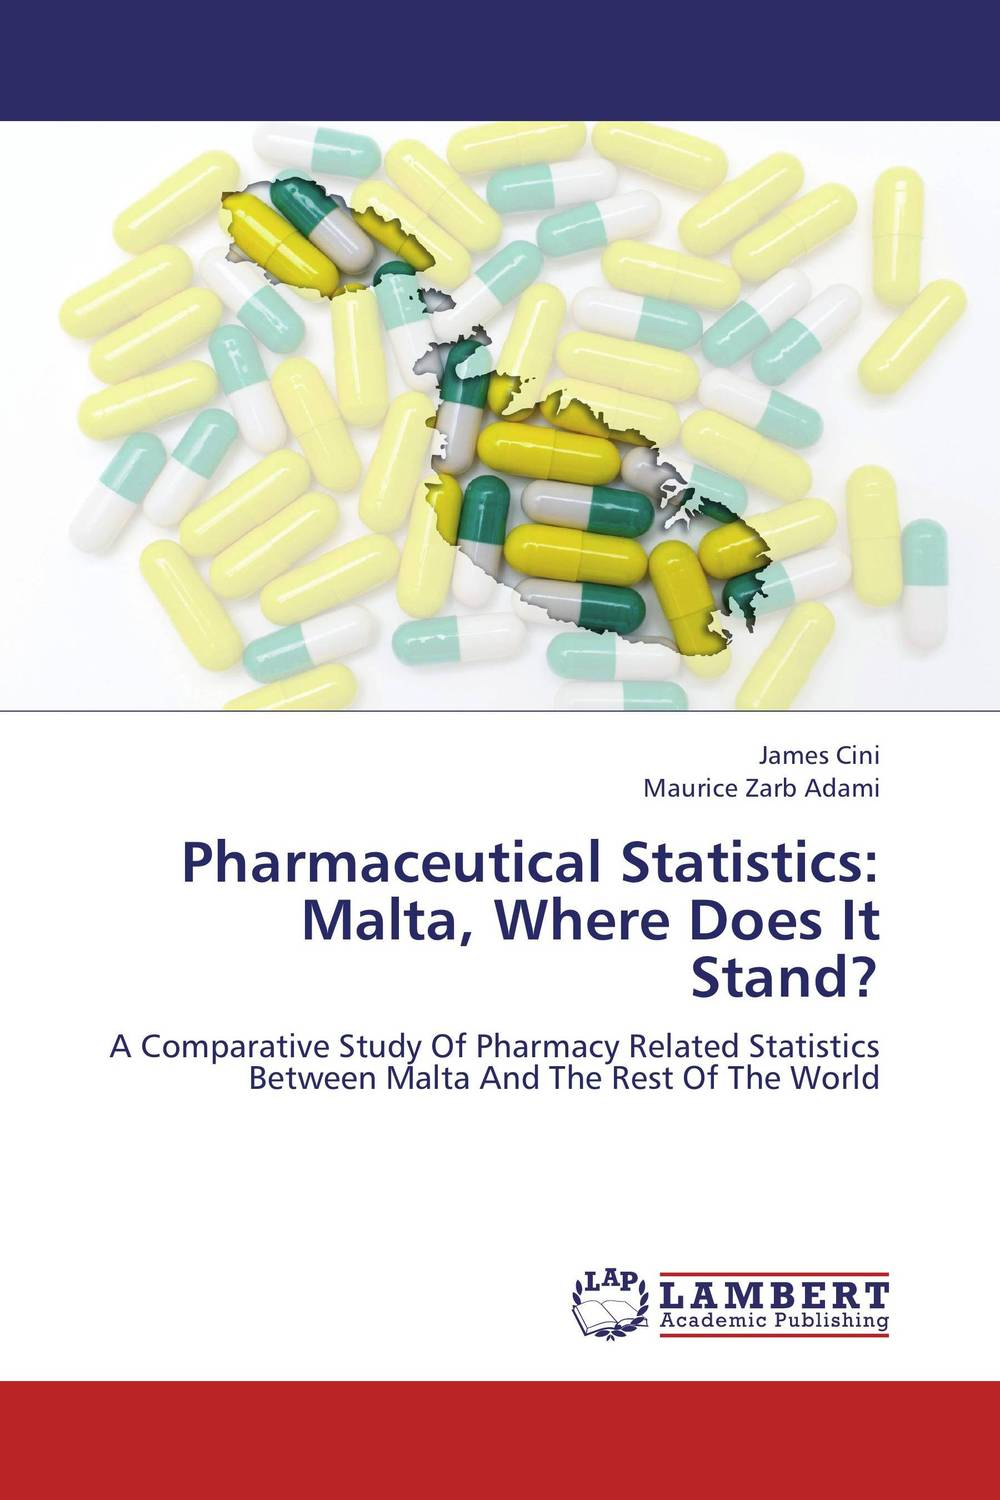 Pharmaceutical Statistics: Malta, Where Does It Stand?